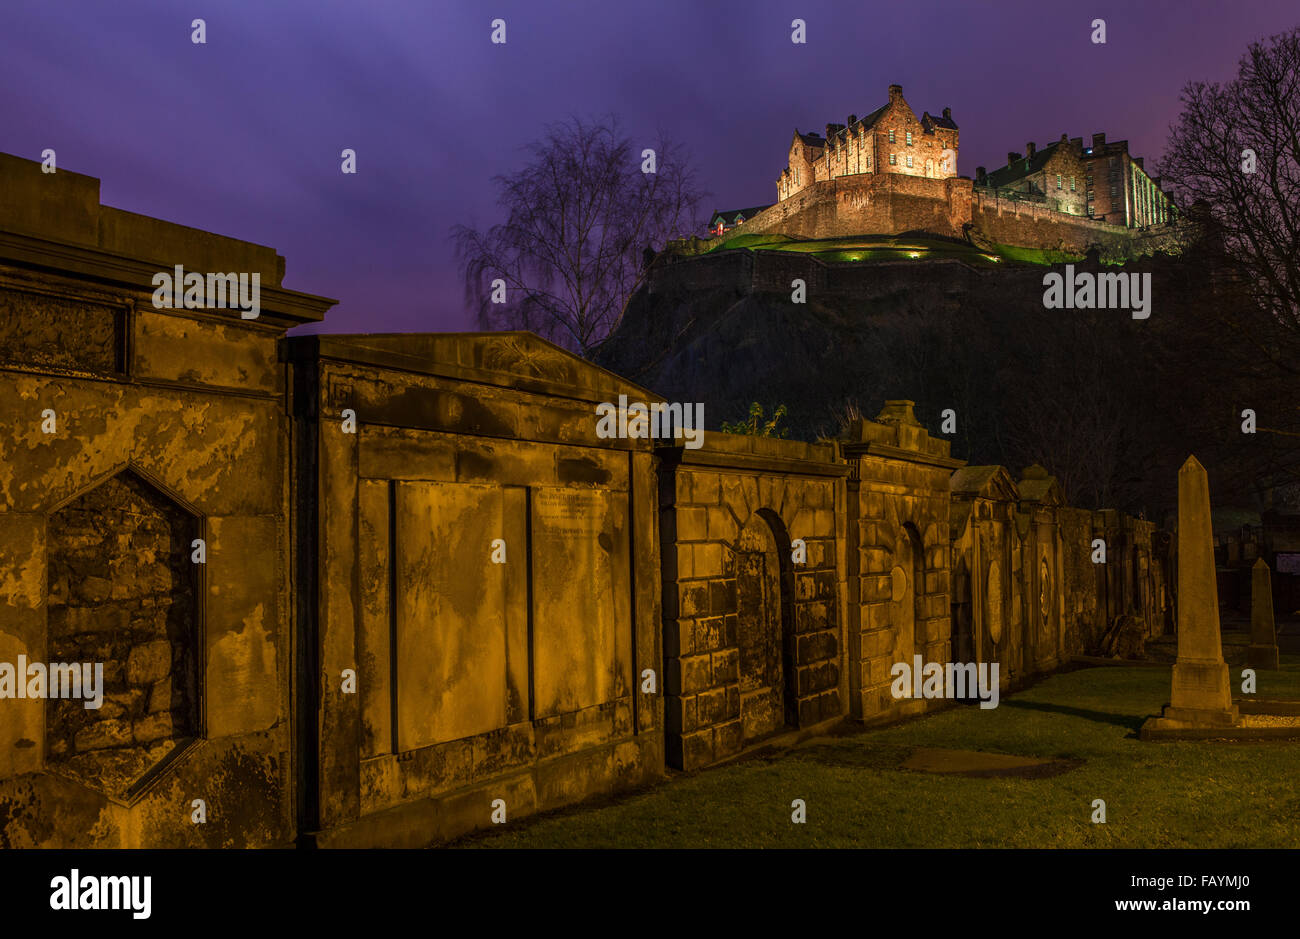 A stunning view of Edinburgh Castle from a Churchyard, Scotland. Stock Photo